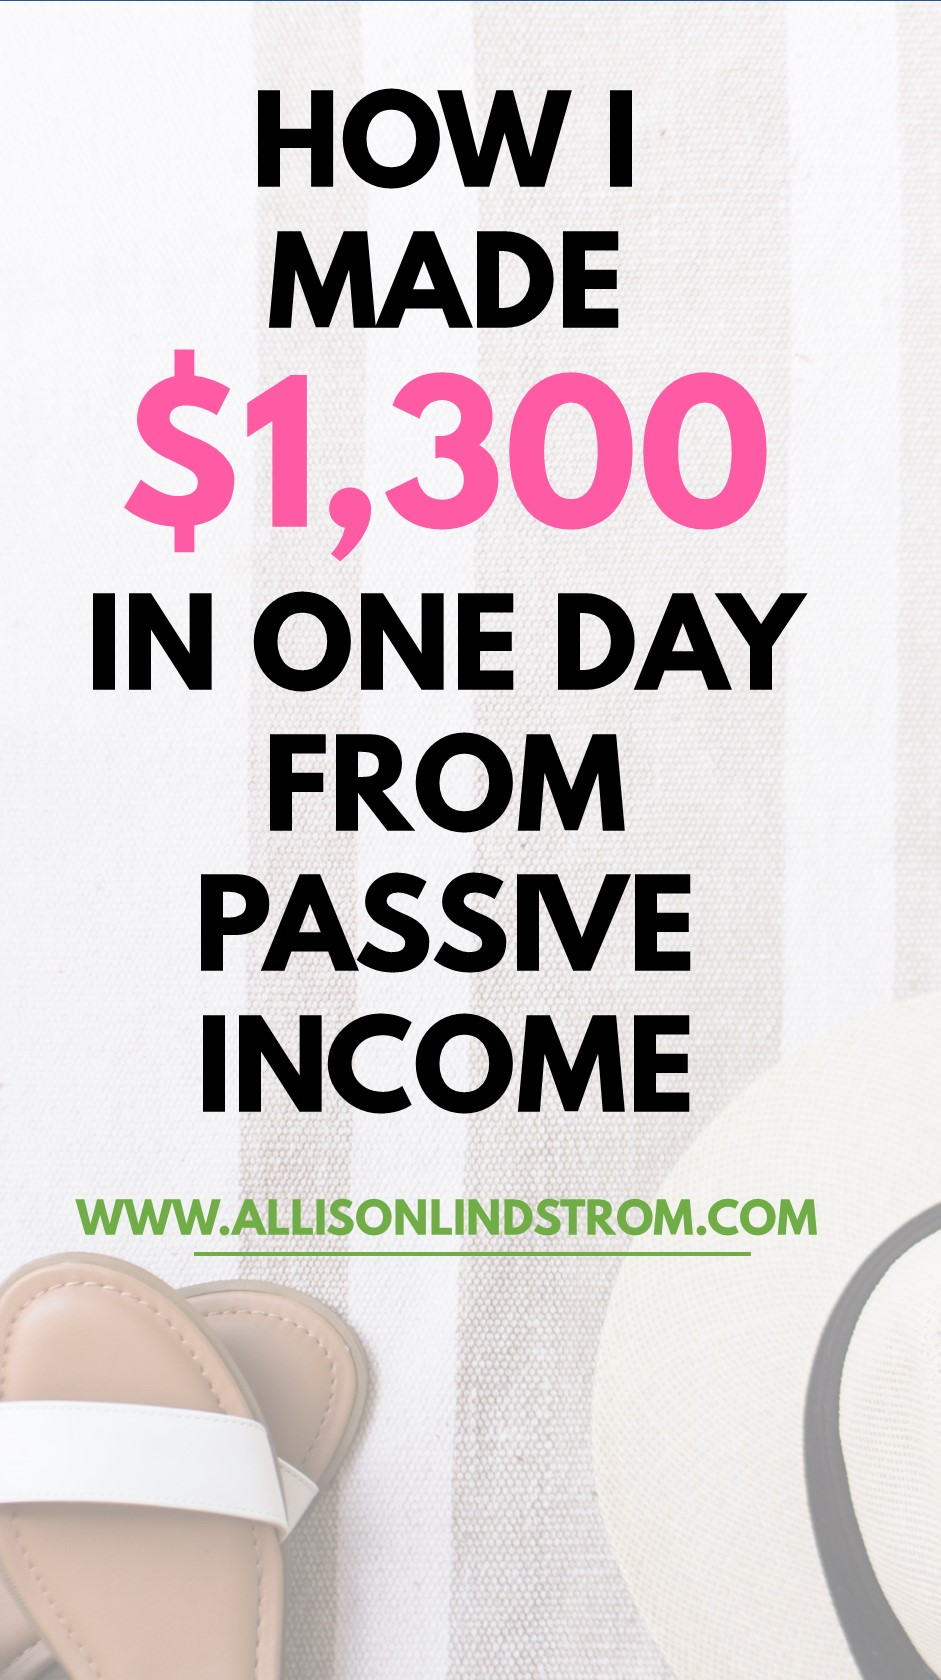 Looking for some passive income ideas or how to earn money online? I made $1,300 in ONE DAY while I was moving my family into our new home. It was the very definition of passive income and it felt great! Here's how I worked my butt off to accomplish it and how I think YOU can replicate the process.